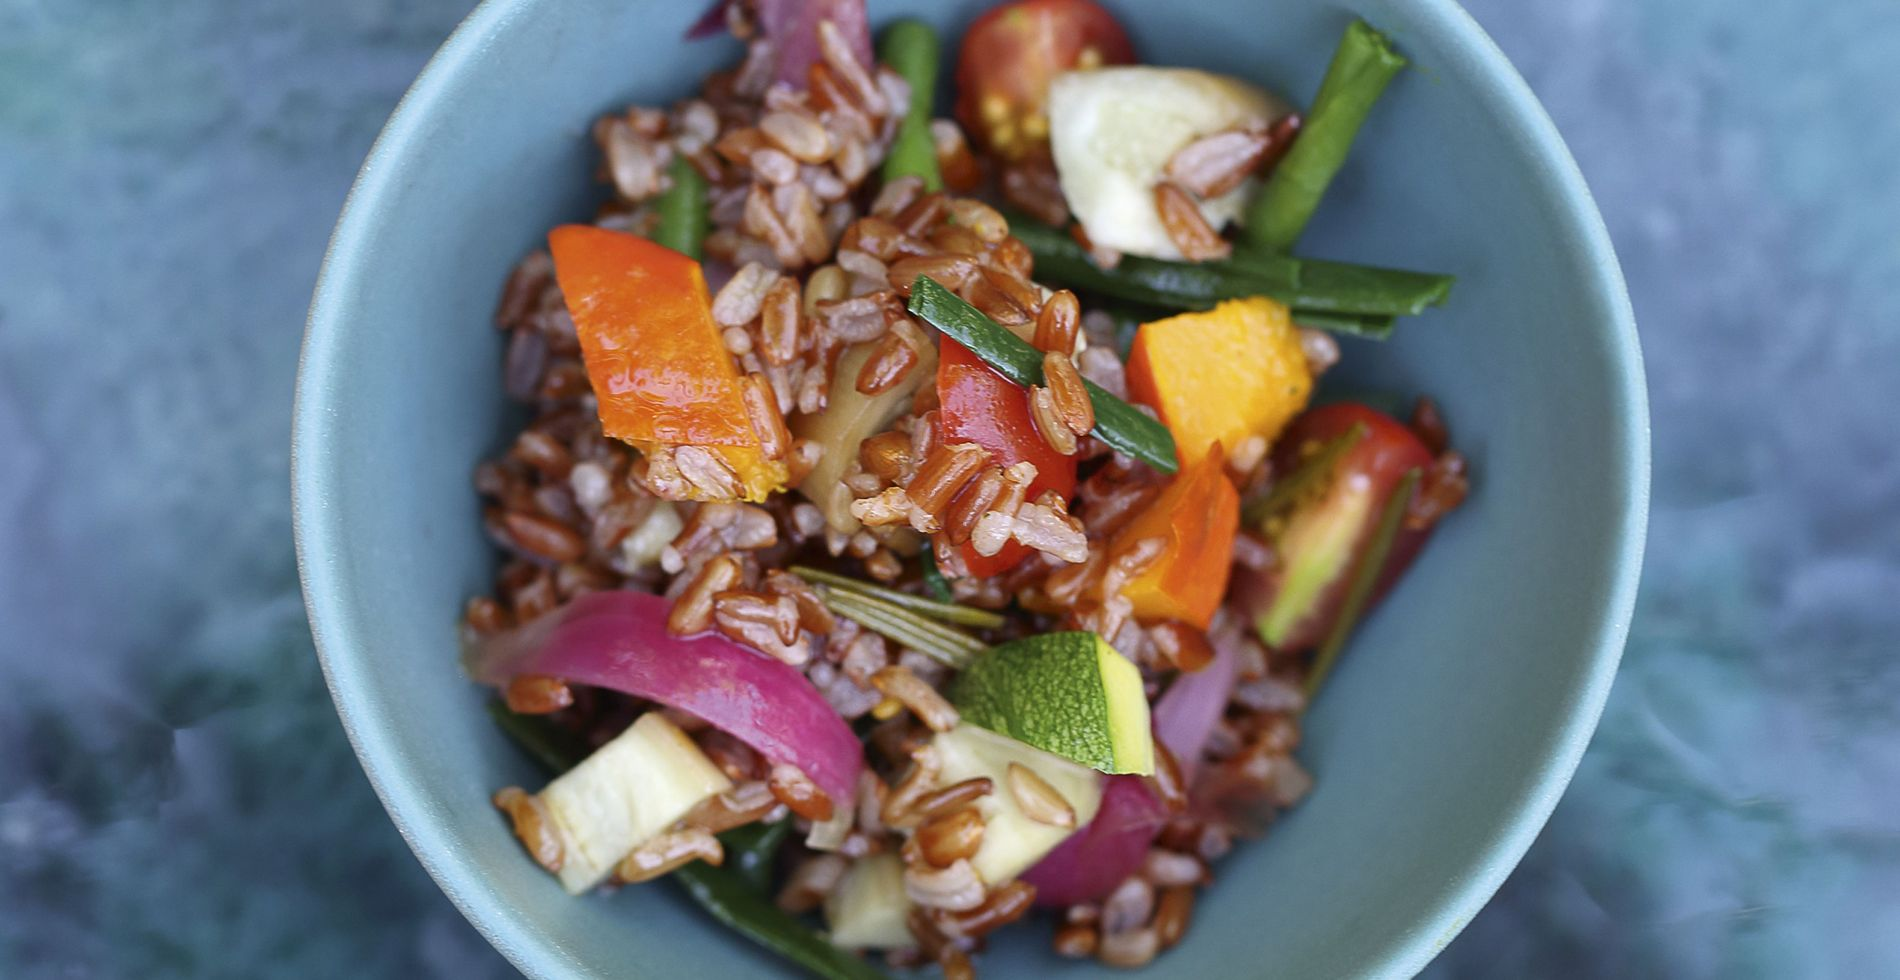 Thai-style red rice with vegetables